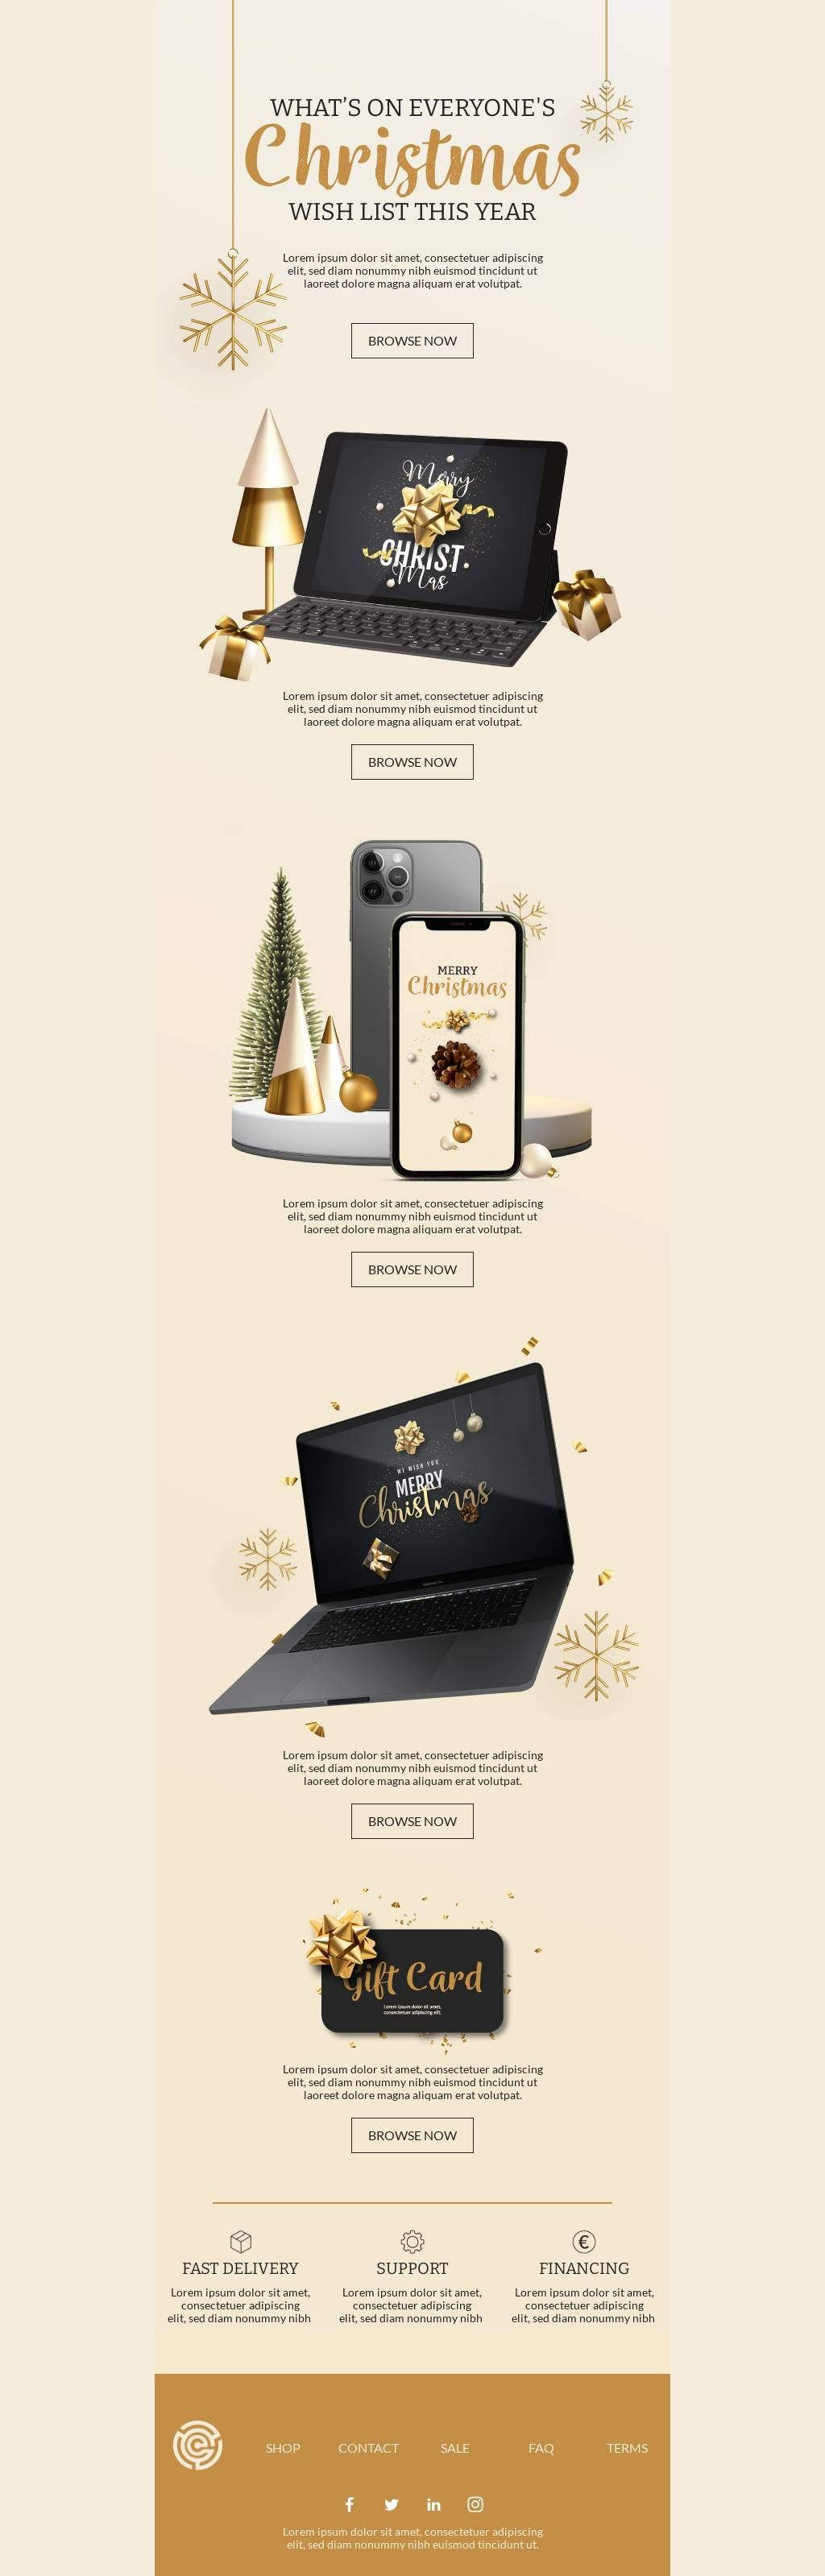 Template Bee Free Email Template Design Christmas Wishes Email Templates